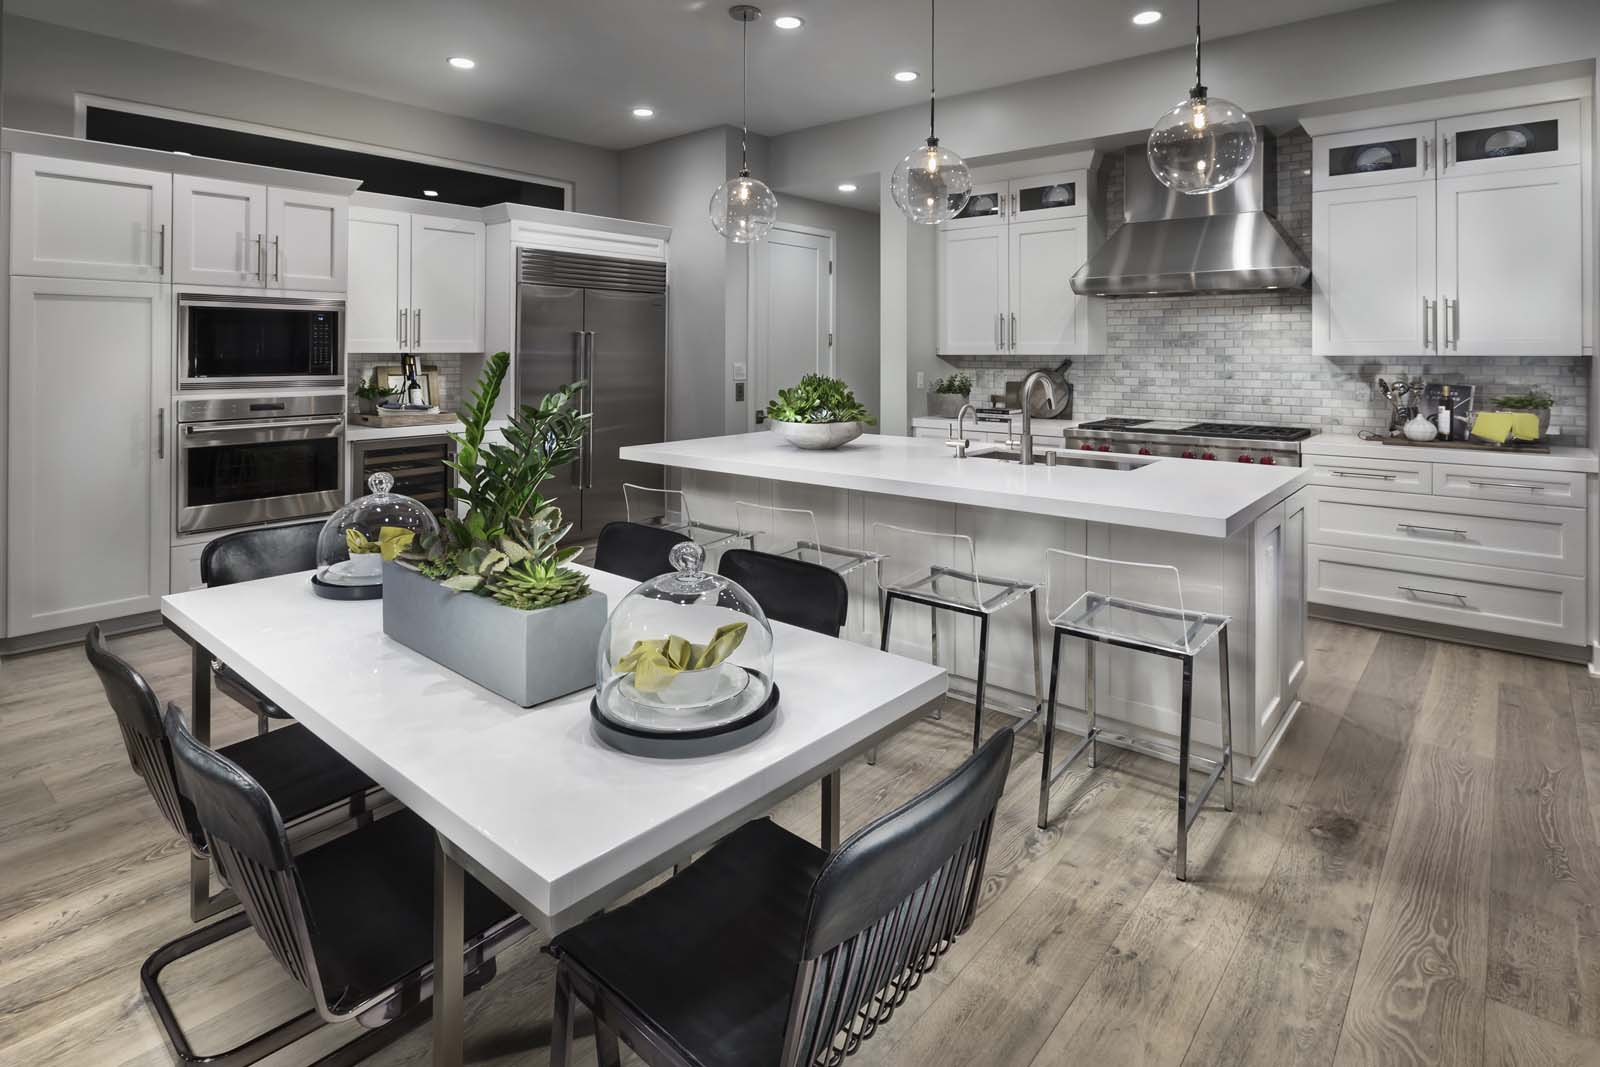 Kitchen Residence 2 | The Collection at Playa Vista in Los Angeles, CA | Brookfield Residential